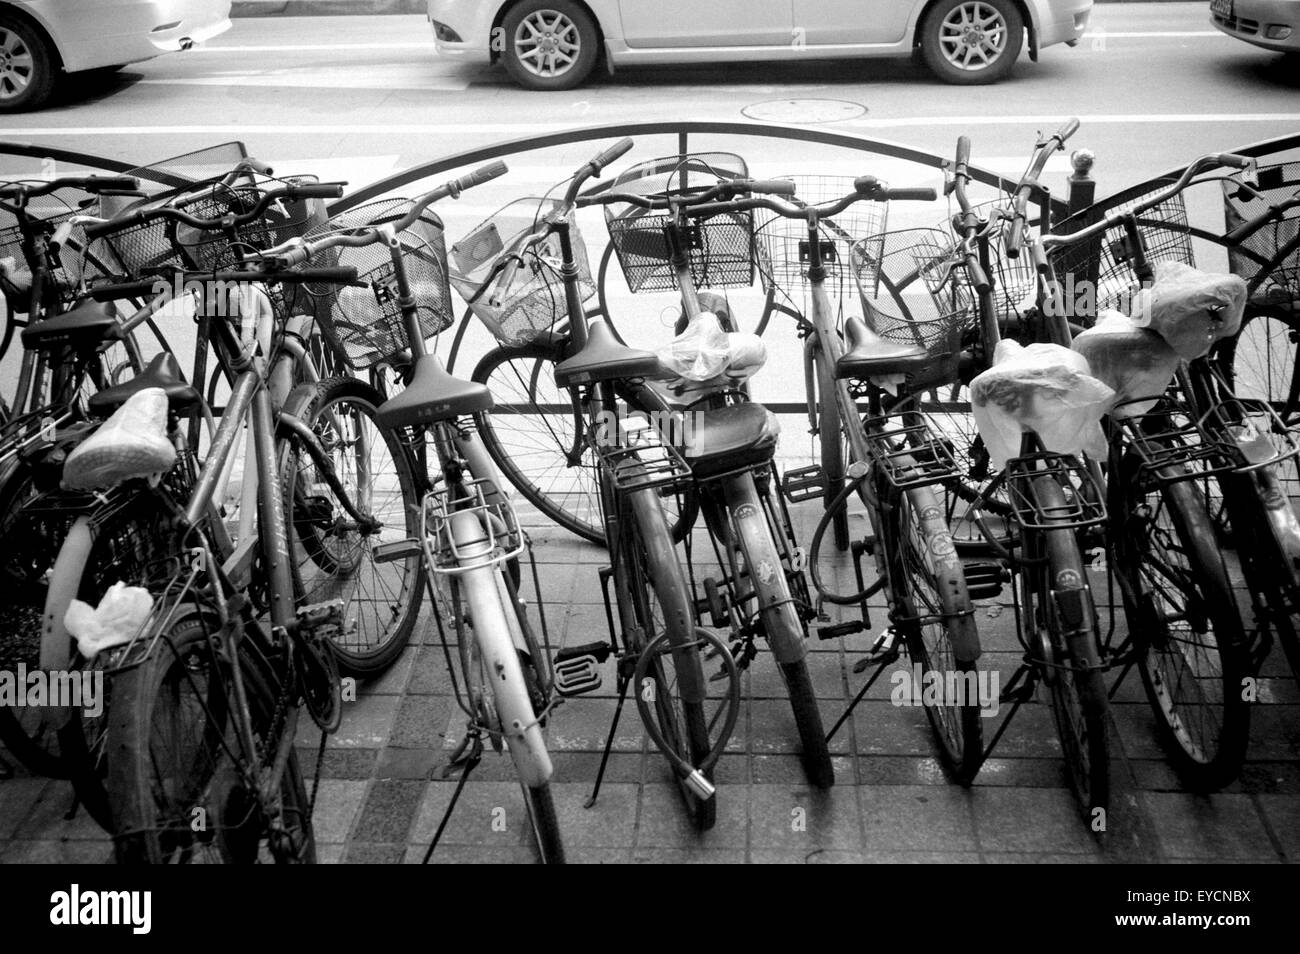 Bicycles parked in Shanghai - Stock Image